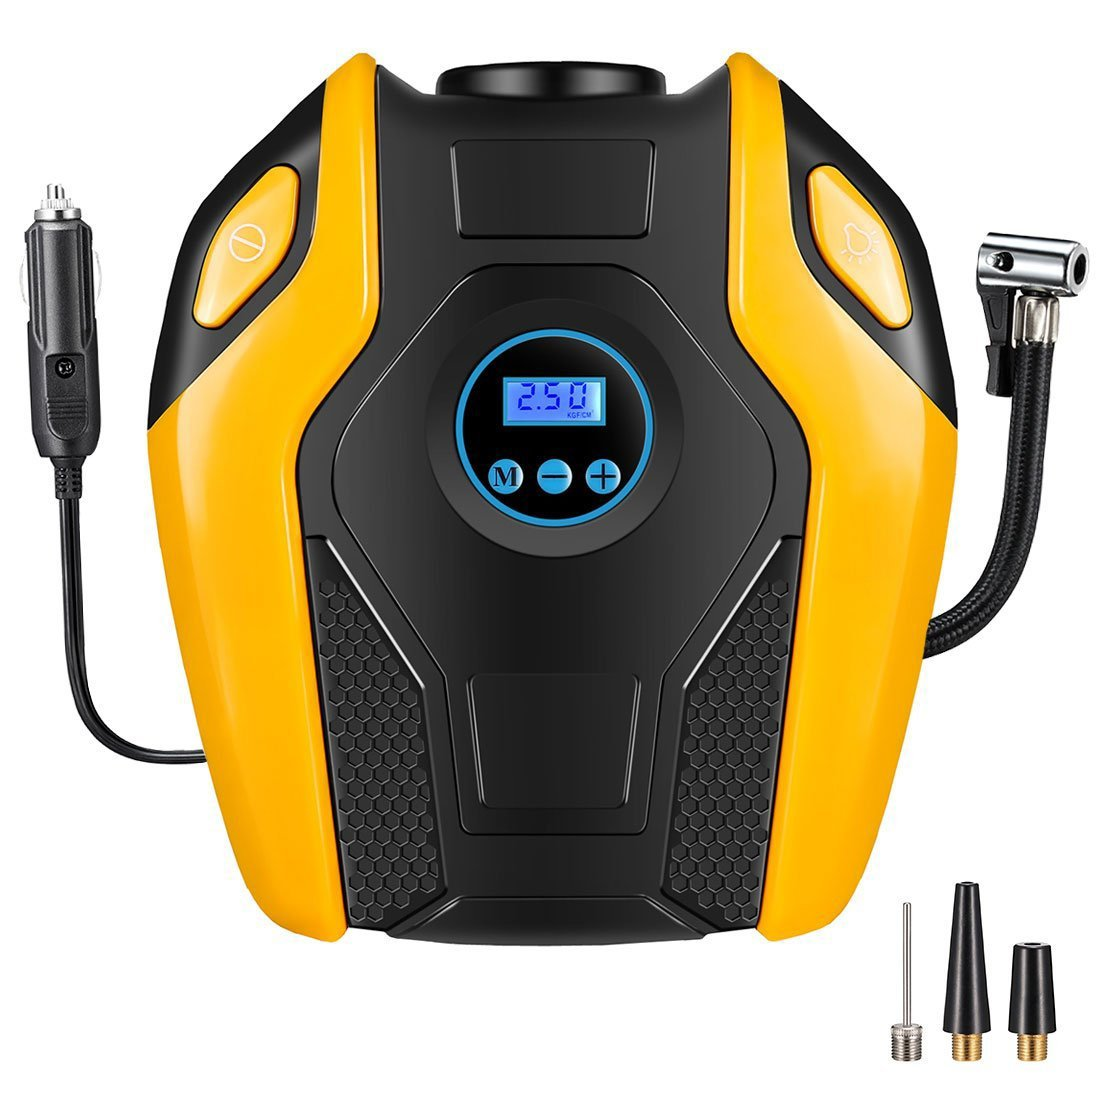 Portable Tire Pump for Cars Motorcycles 100 PSI Auto Digital Tyre Inflator Balls Bicycles Inflatab WLZP 12V DC Digital Tire Inflator with LED Lamp Digital Pressure Gauge Portable Air Compressor Pump